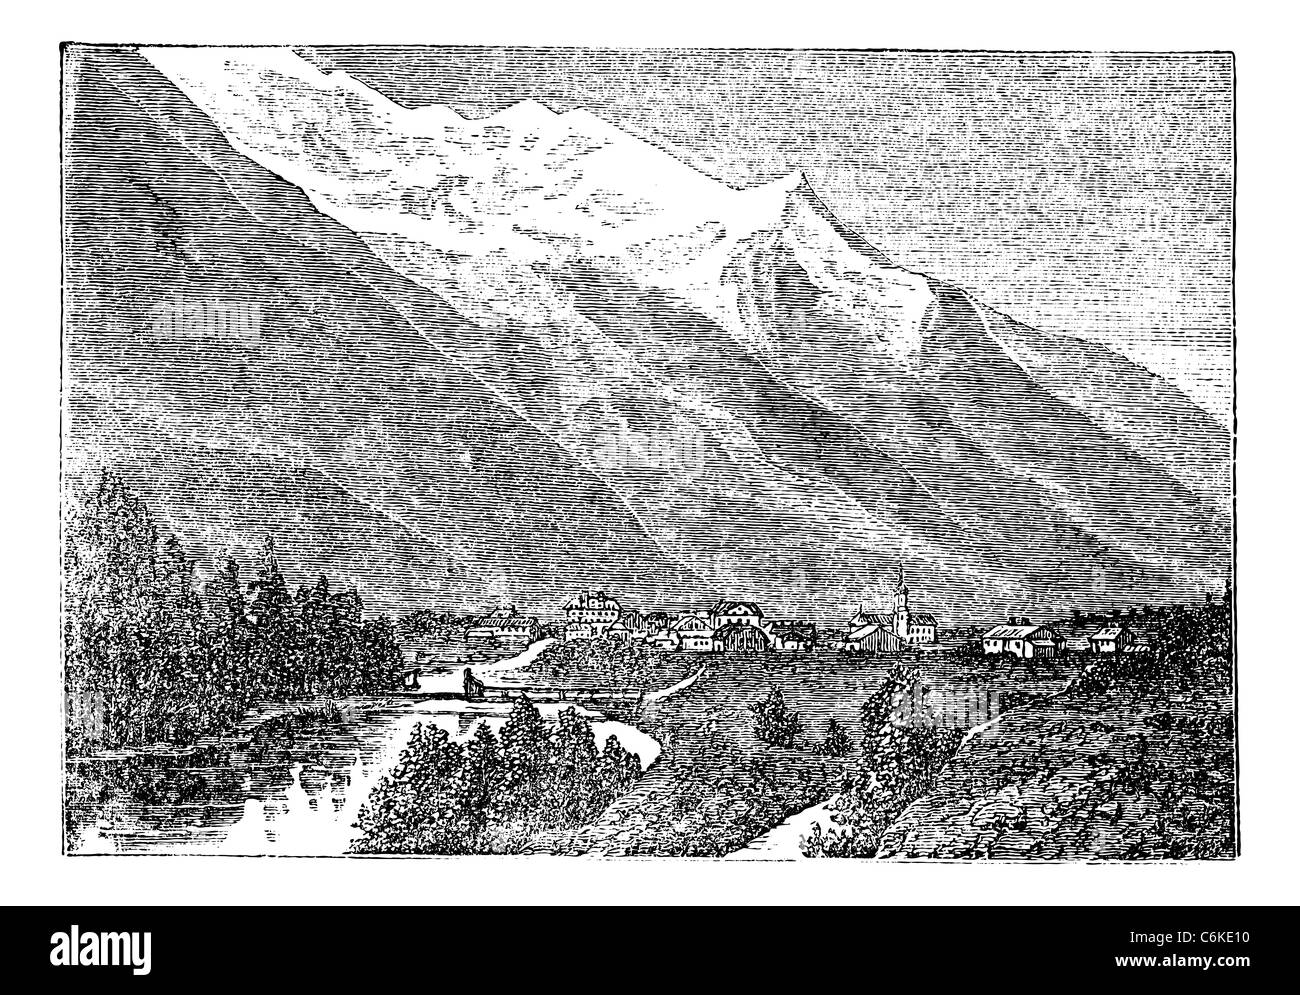 Mont Blanc, Monte Bianco, le Mont Blanc near Chamouny vintage engraving. Old engraved illustration of Mont Blanc - Stock Image